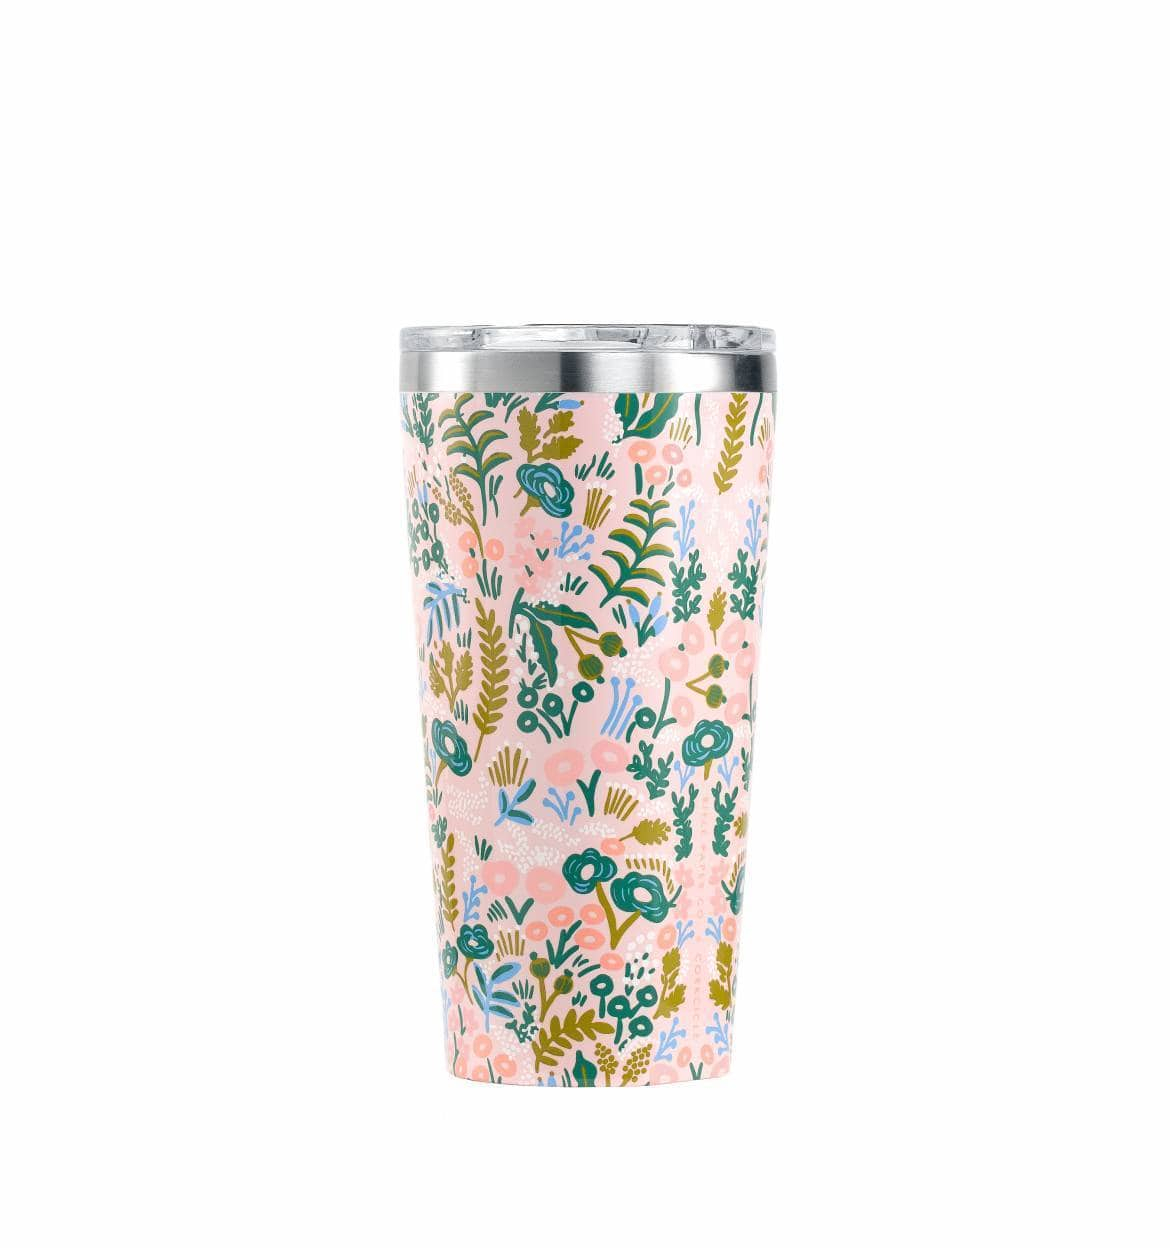 Rifle Paper Co. x Corkcicle Tumbler - Tapestry